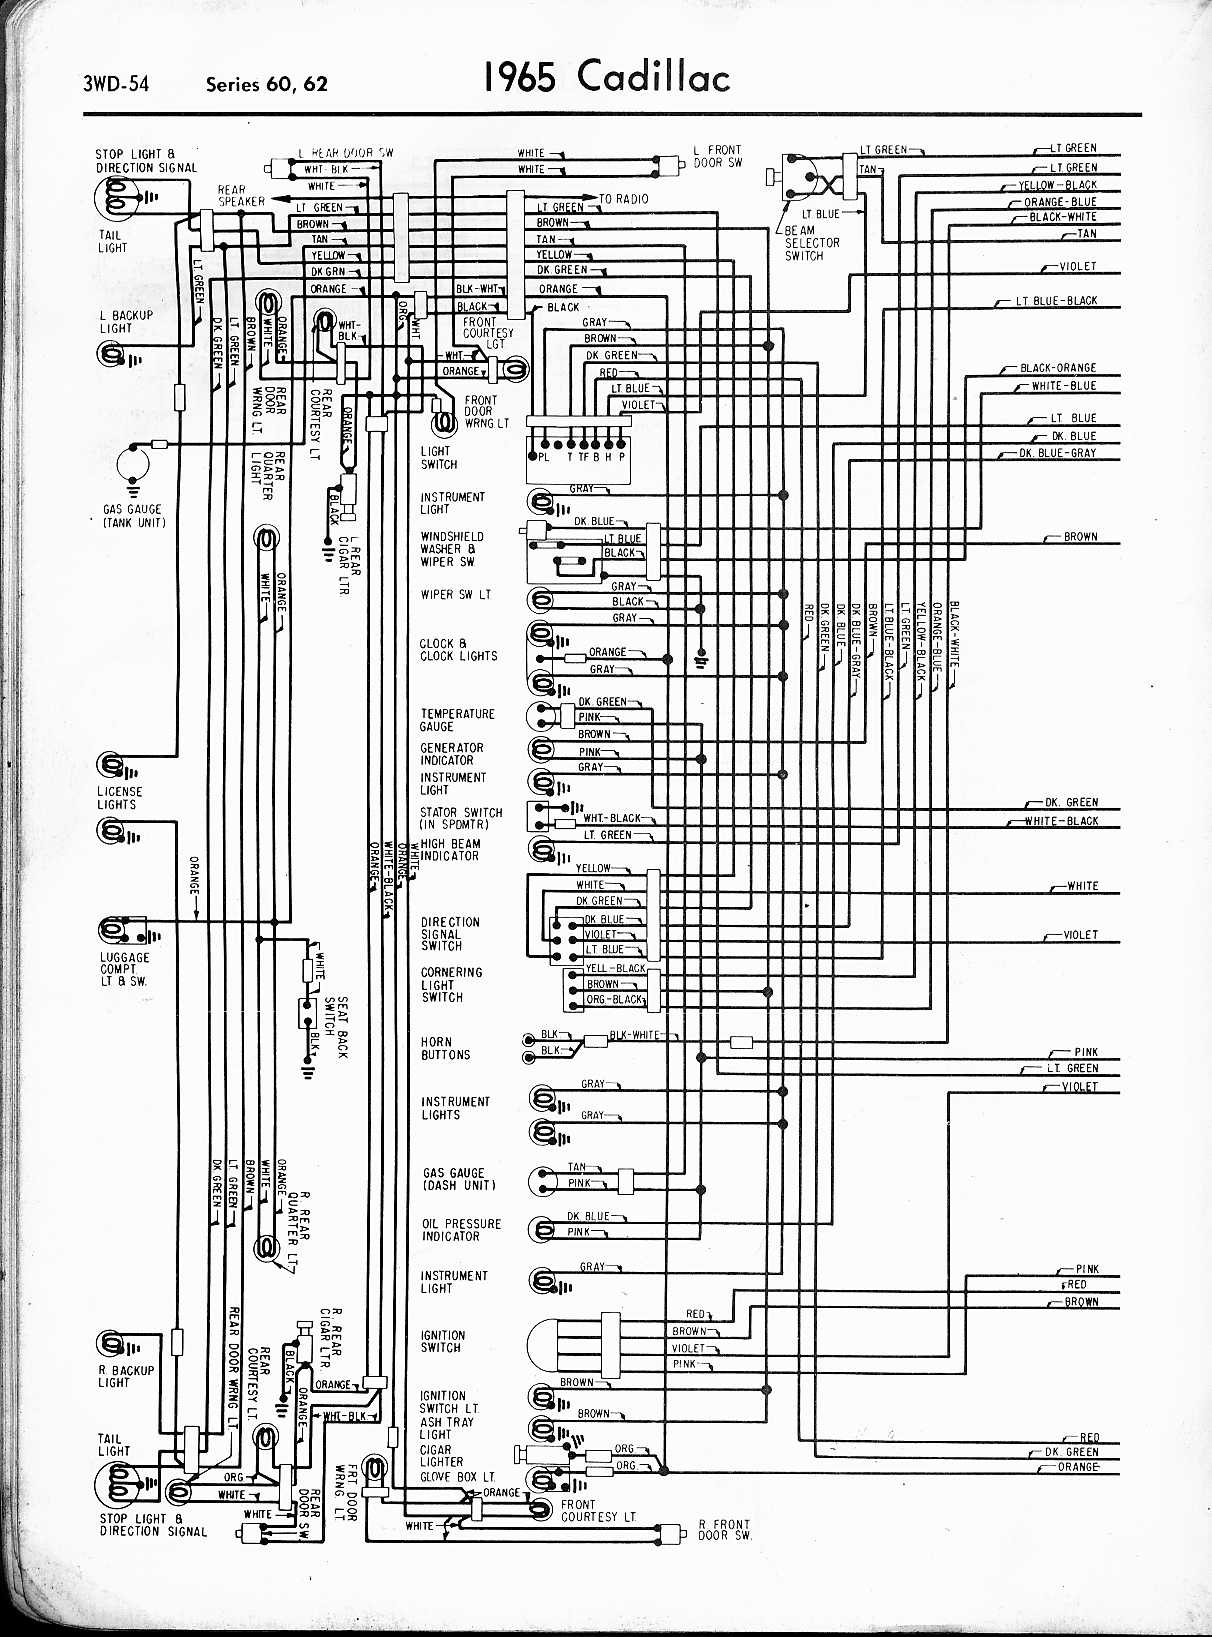 [SODI_2457]   Cadillac Wiring Diagrams: 1957-1965 | 1966 Cadillac Alternator Wiring Diagram |  | The Old Car Manual Project